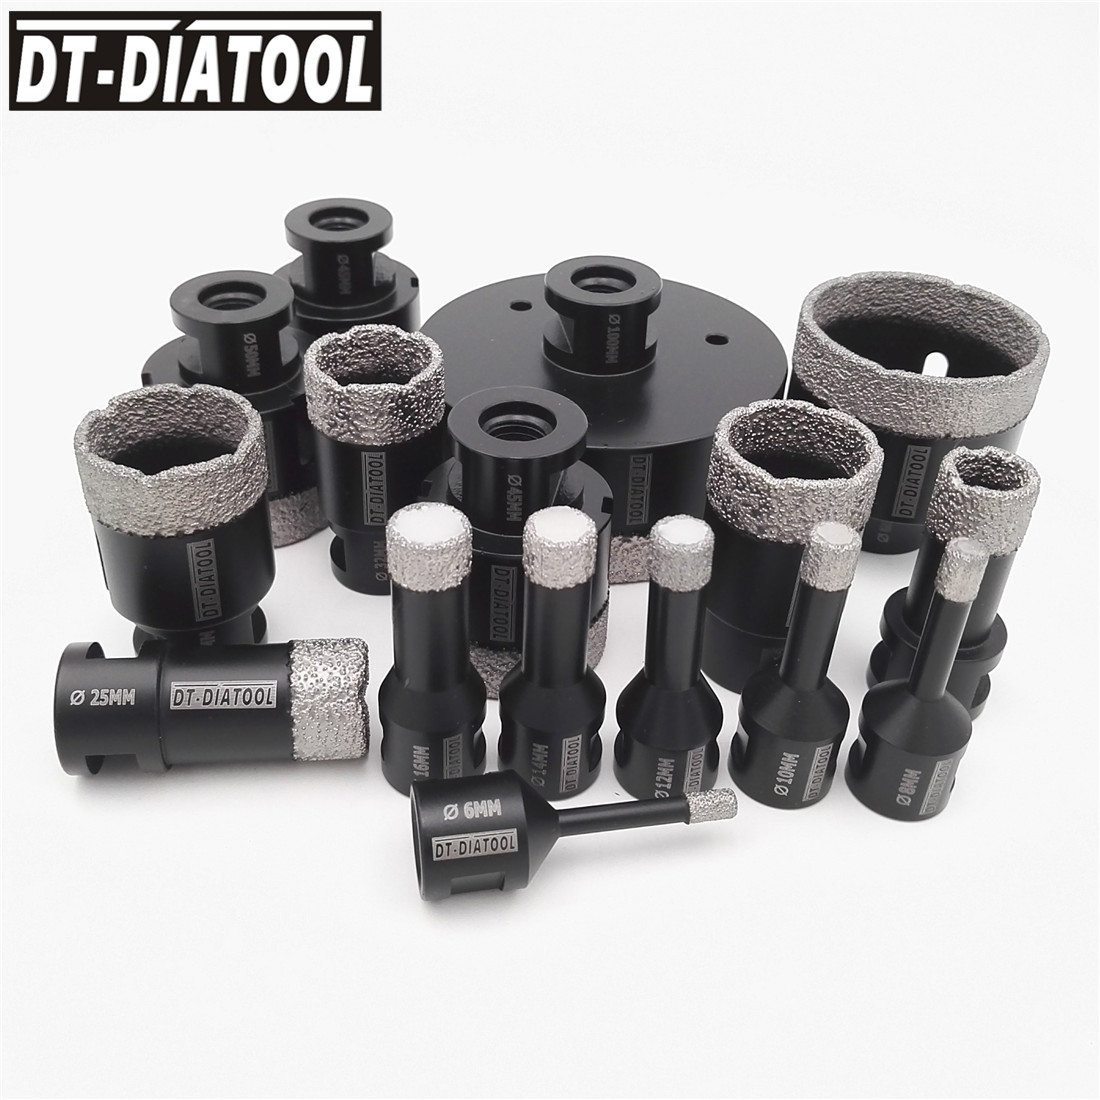 DT-DIATOOL Dry Vacuum Brazed diamond drilling core bits Ceramic tile Hole saw granite marble Professional quality drill bits